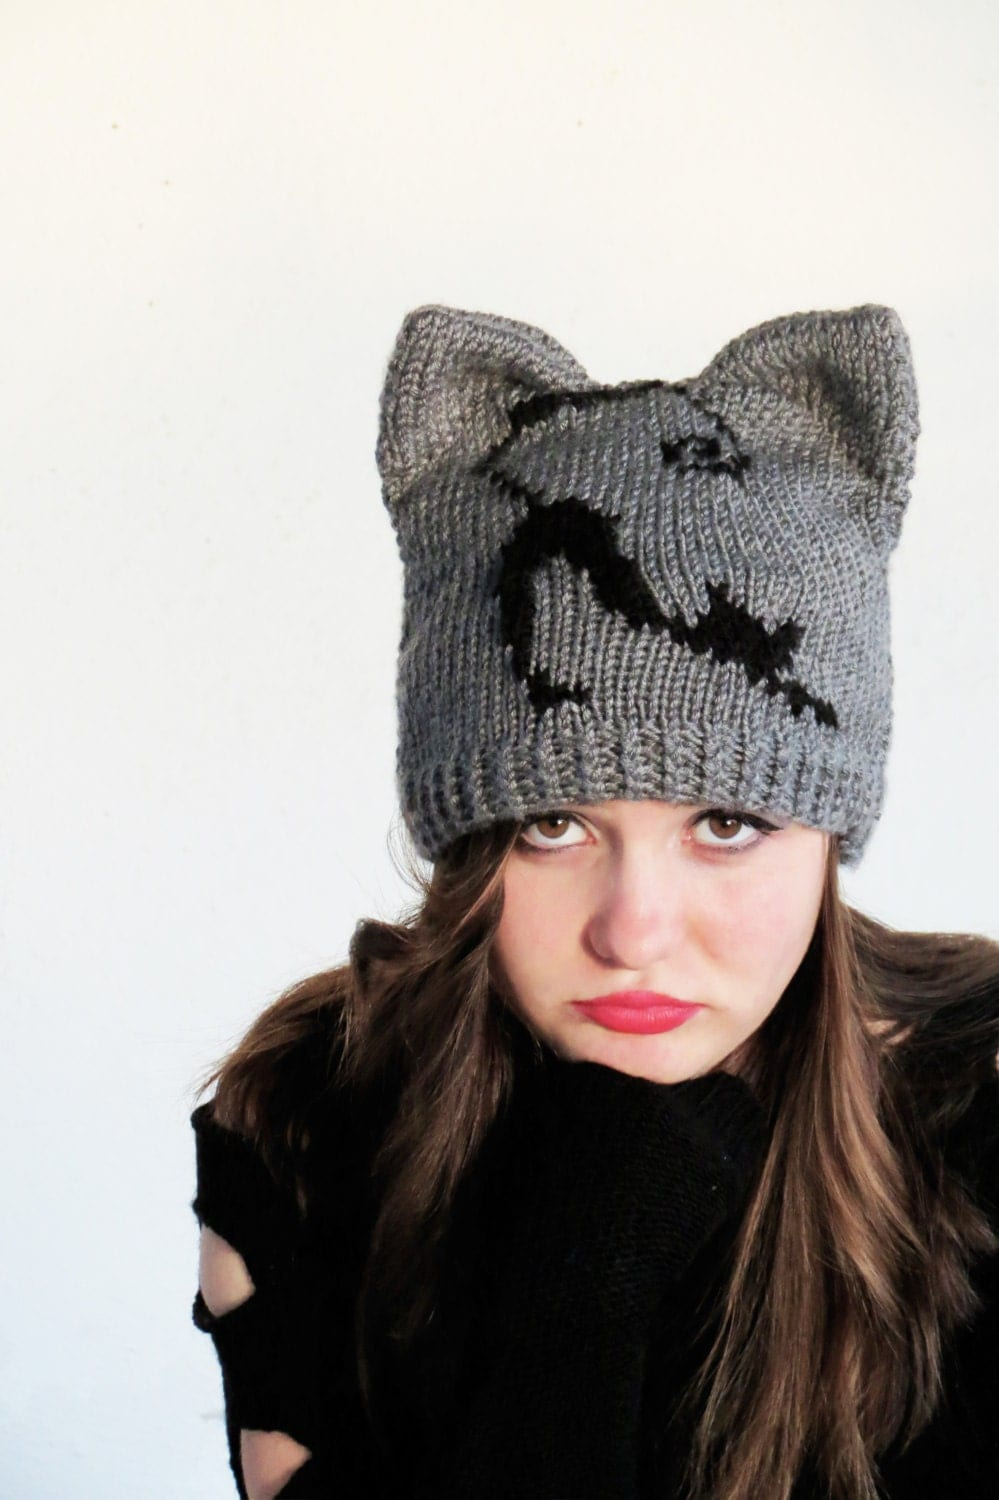 Knitting Patterns For Hats With Cat Ears : Knit Cat Ear Hat Cat Ear Beanie Gray Cat Hats by EmofoFashion